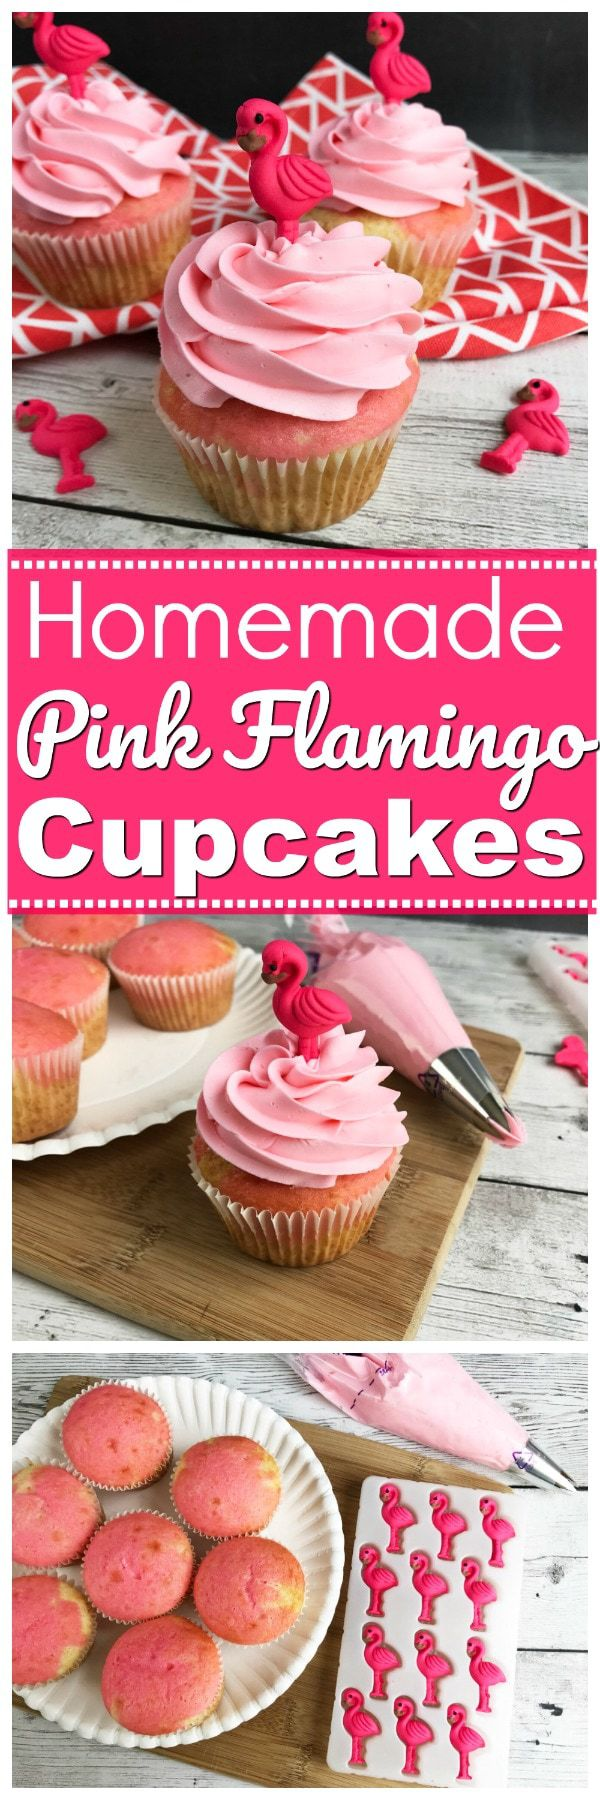 homemade flamingo cupcakes, Flamingo Cupcakes, Flamingo Desserts, pink flamingo cakes, pink flamingo birthday parties, beach themed birthday cupcakes, beach themed cupcakes, flamingo desserts, desserts with flamingos, cupcakes with flamingos, edible pink flamingo cupcake toppers